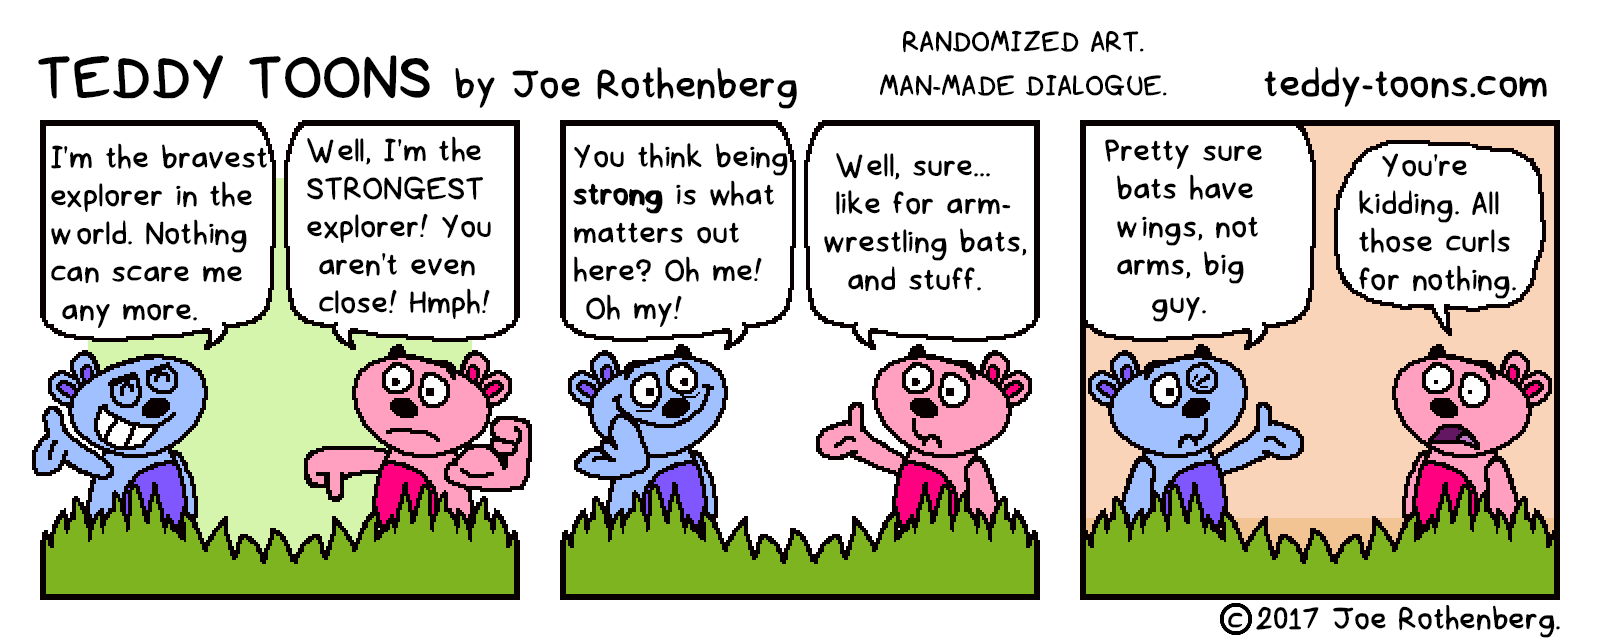 02-02-17.png